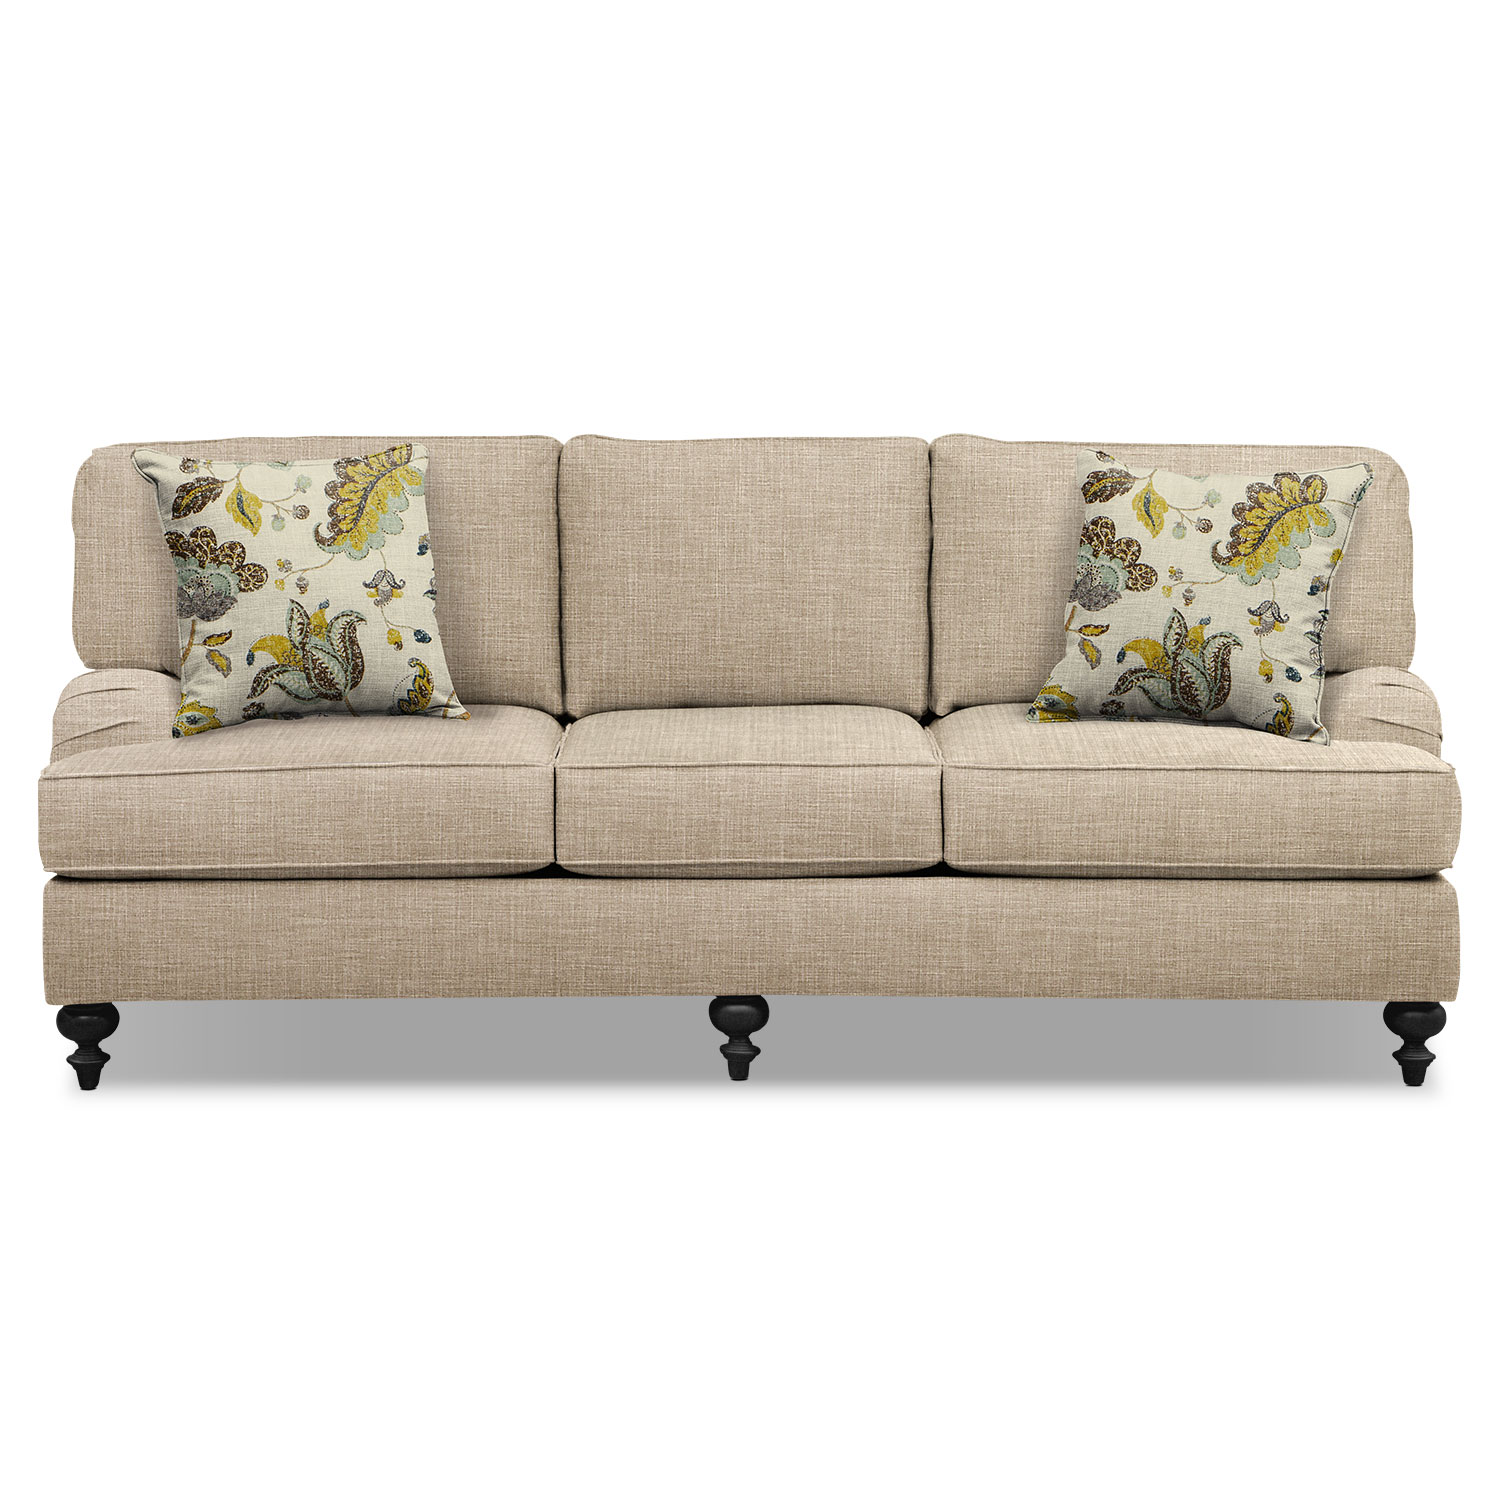 "Avery Taupe 86"" Memory Foam Sleeper Sofa"